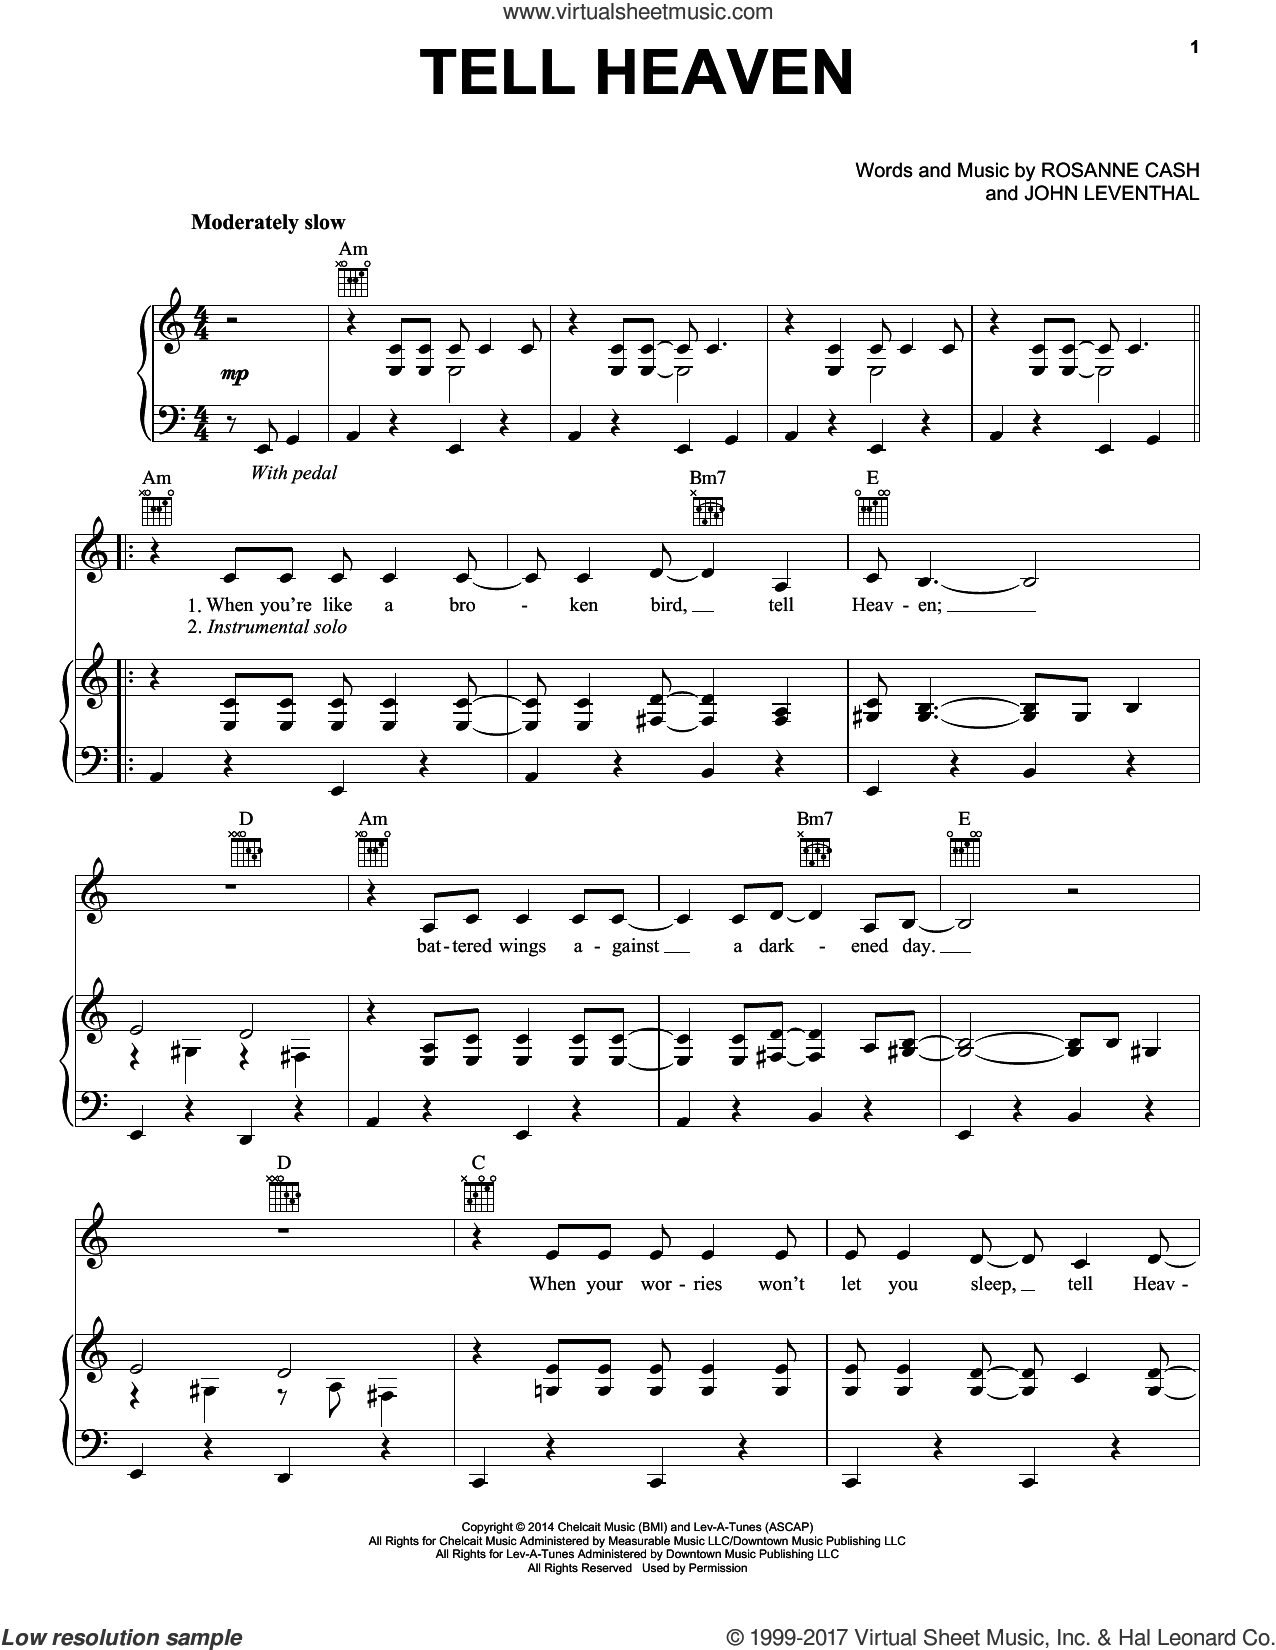 Tell Heaven sheet music for voice, piano or guitar by Rosanne Cash and John Leventhal, intermediate voice, piano or guitar. Score Image Preview.